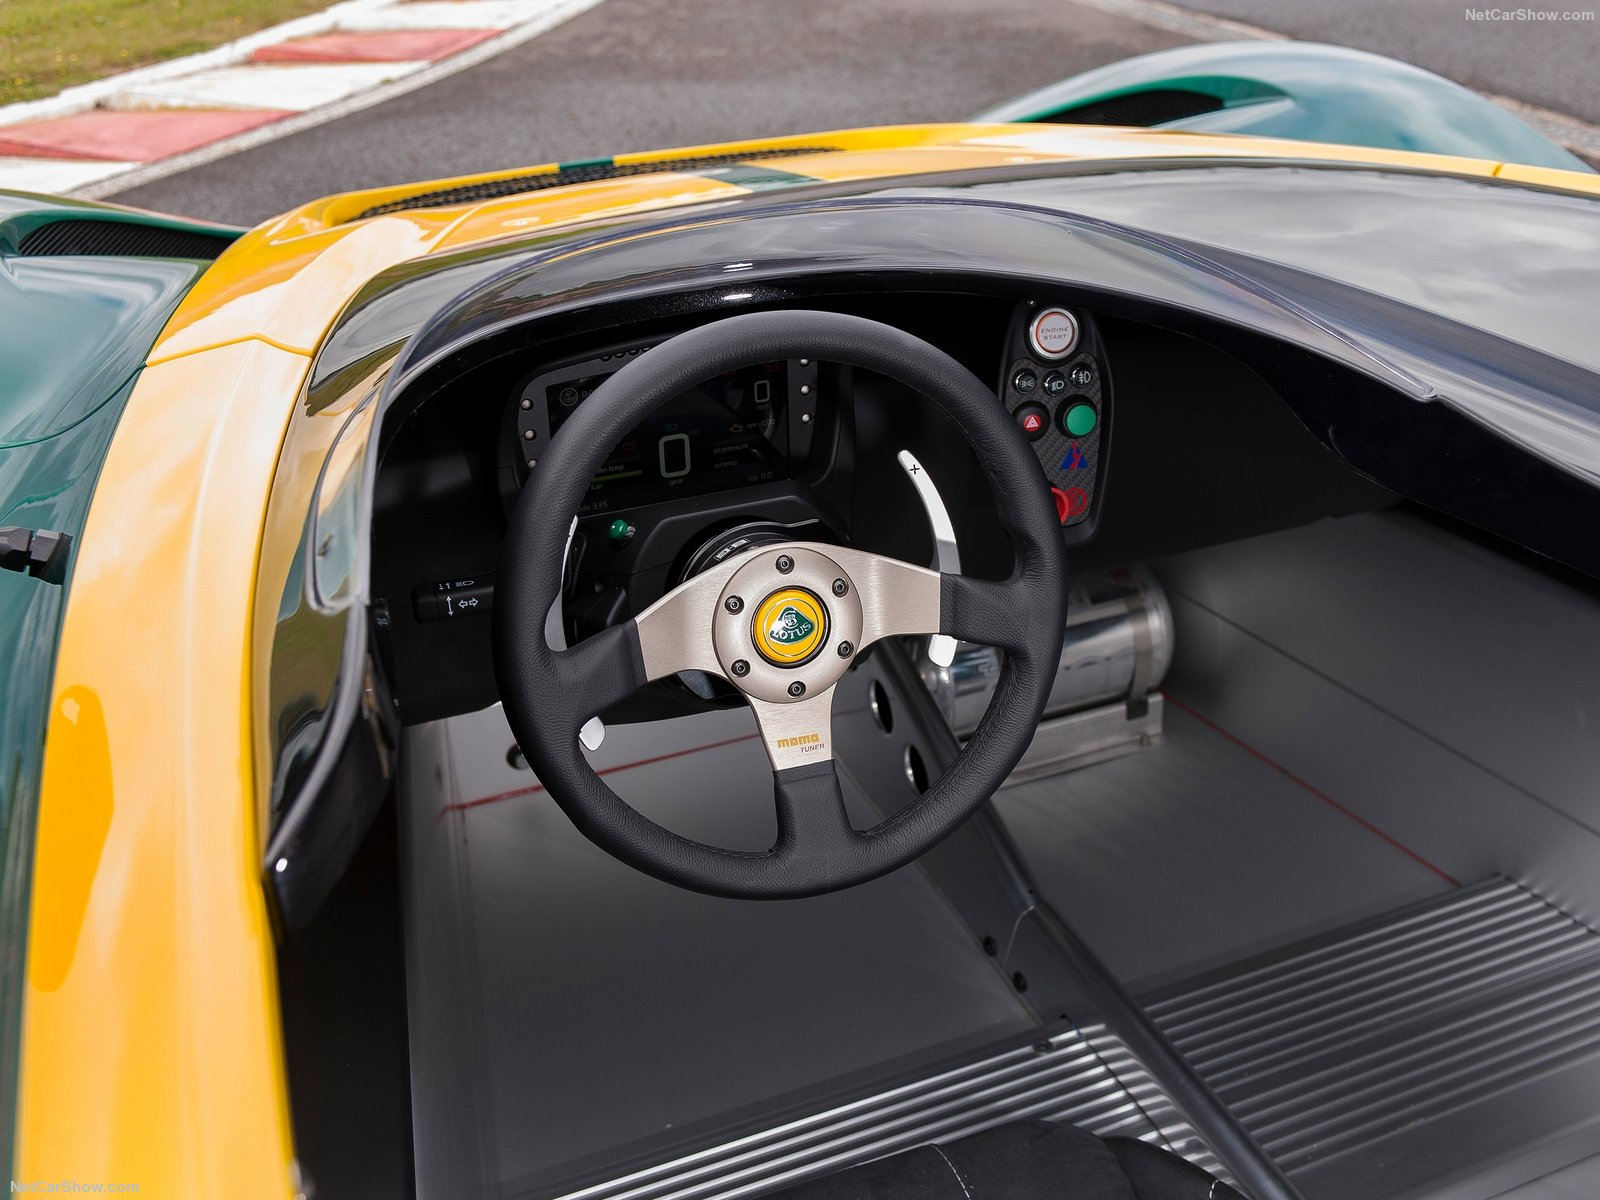 Lotus-3-Eleven_2016_1600x1200_wallpaper_08